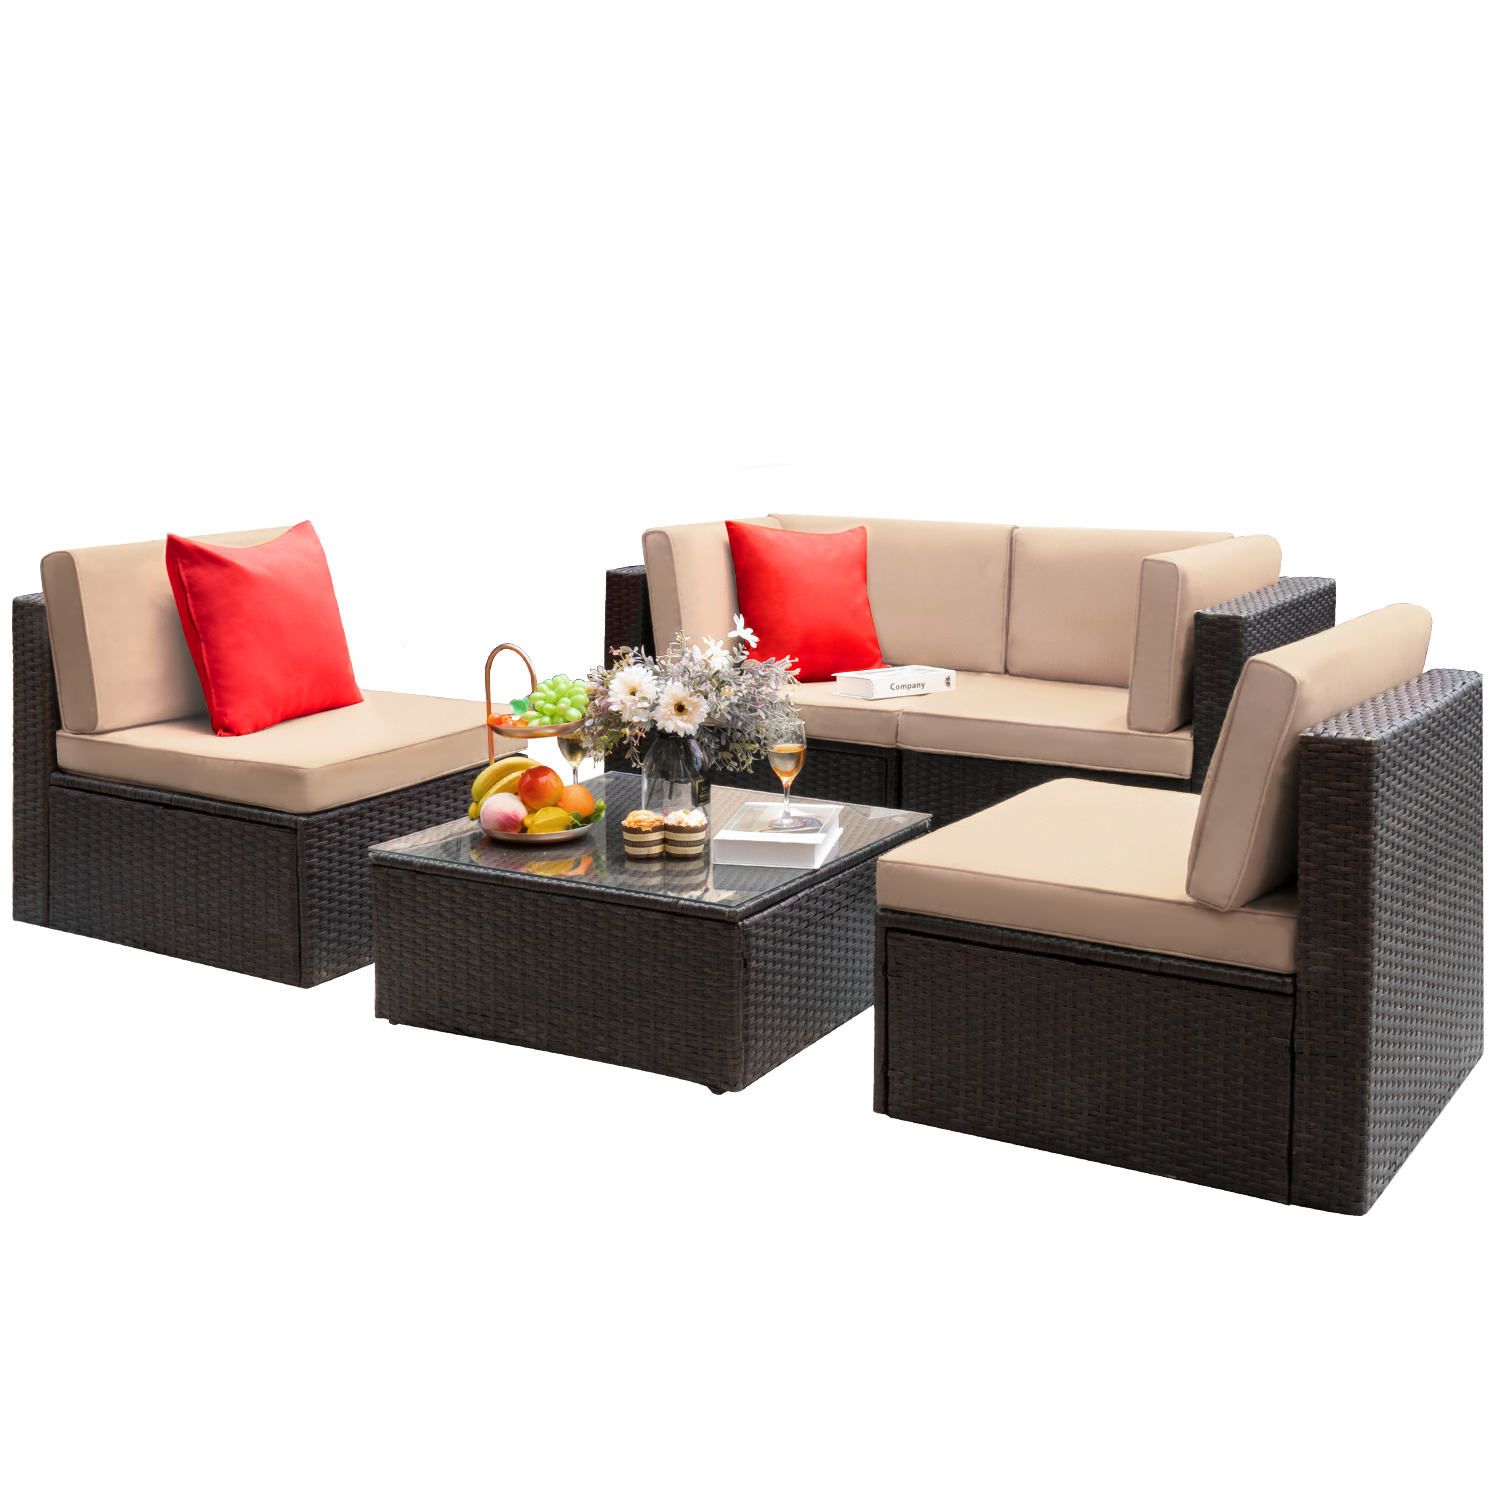 Walnew 5 Pieces Outdoor Patio Sectional Sofa Sets All-Weather Wicker Rattan Conversation Sets With Glass Table (Beige)